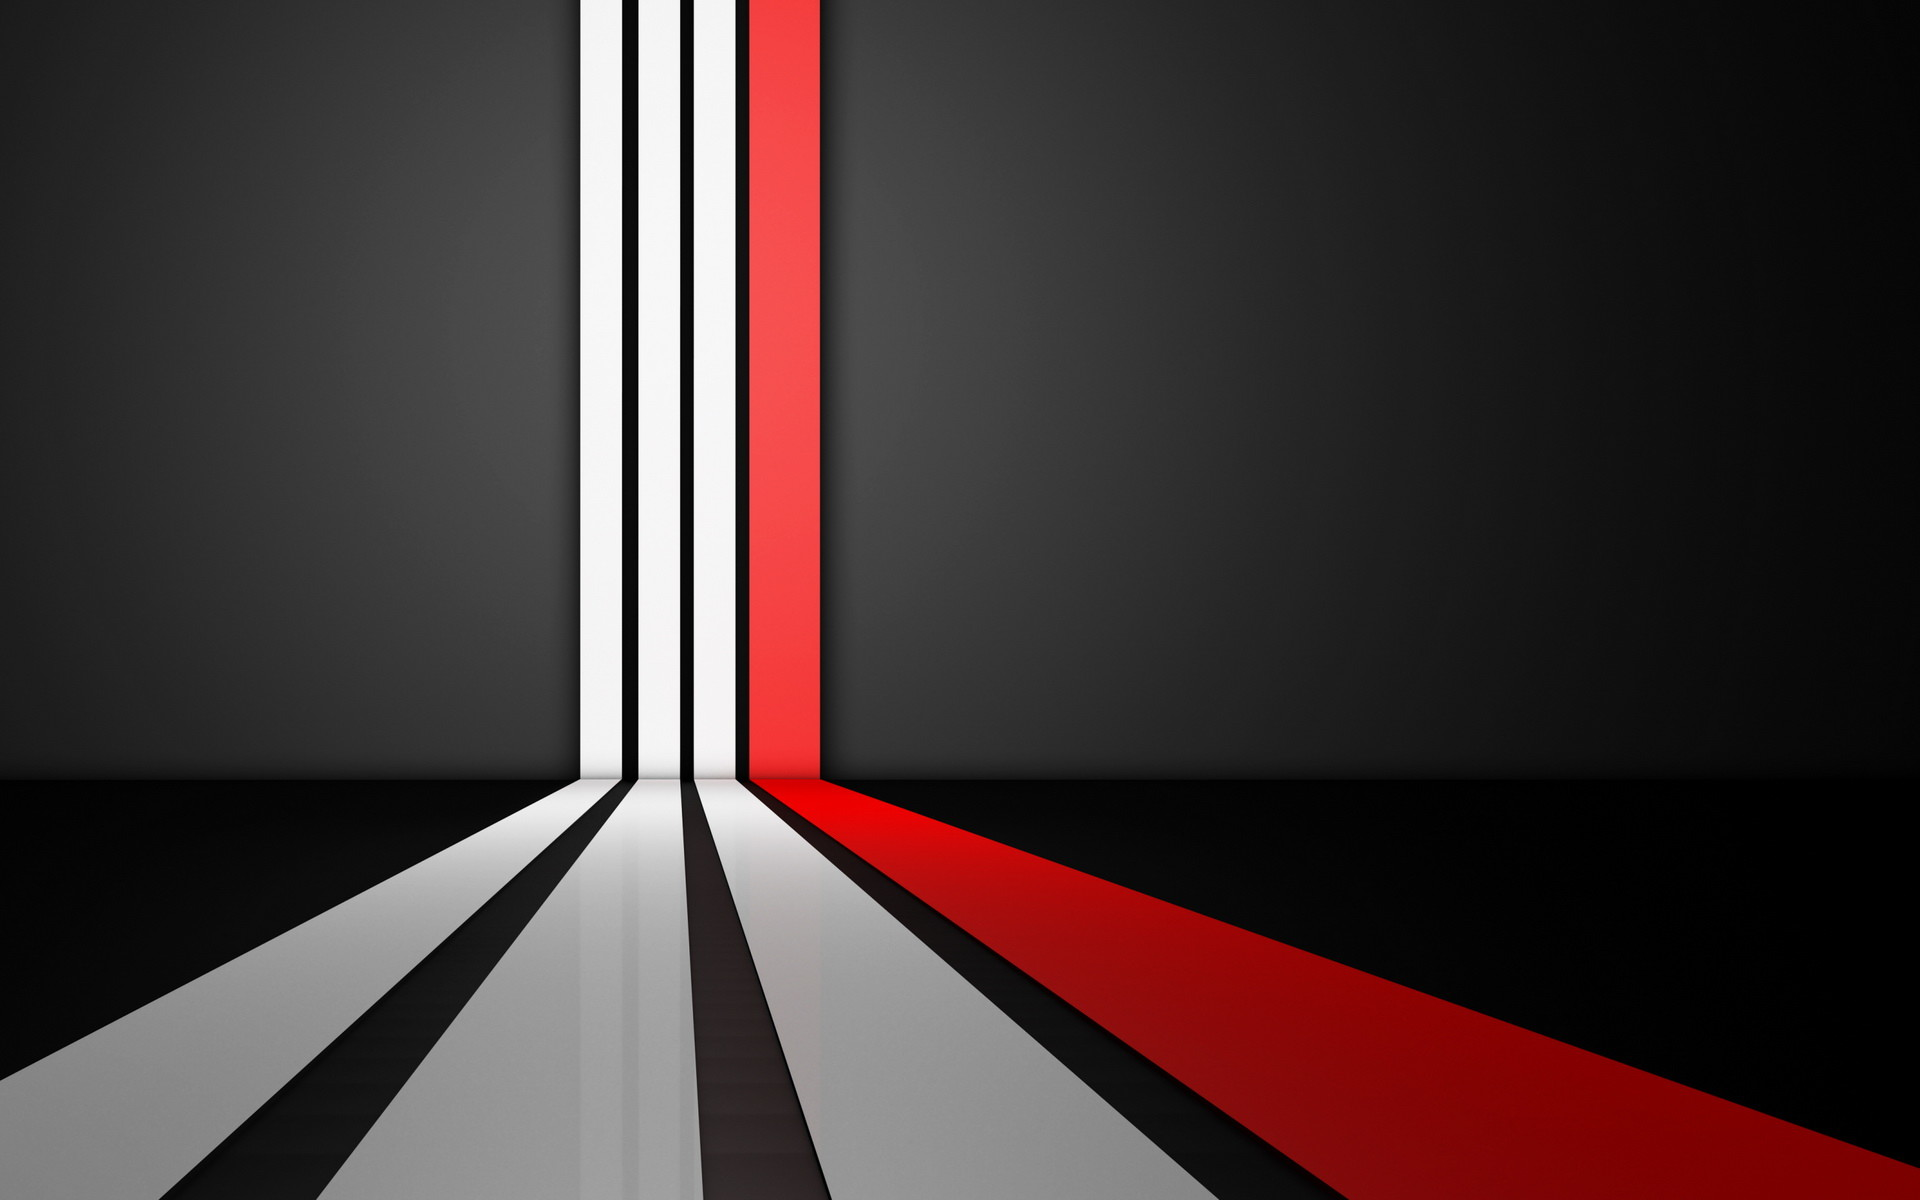 Free HD Black And Red Wallpapers | PixelsTalk.Net